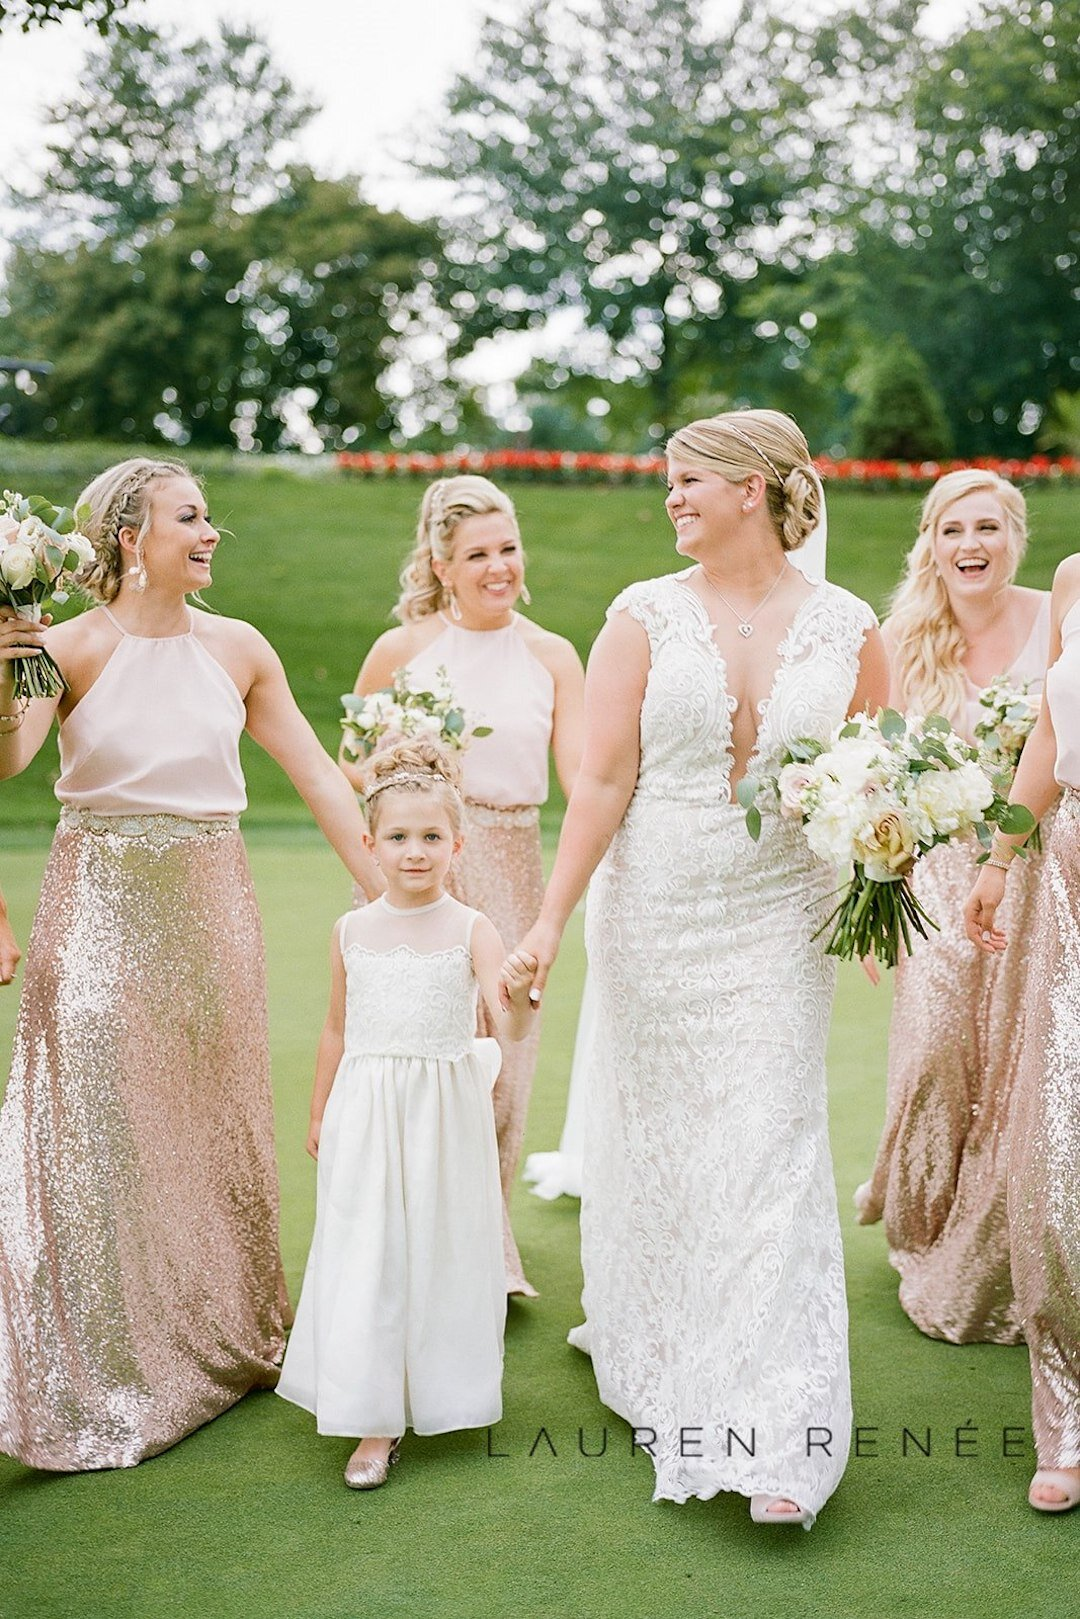 Blush pink sparkly bridesmaid dresses : Romantic Blush Wedding at the Pittsburgh Field Club planned by Exhale Events. See more at exhale-events.com!